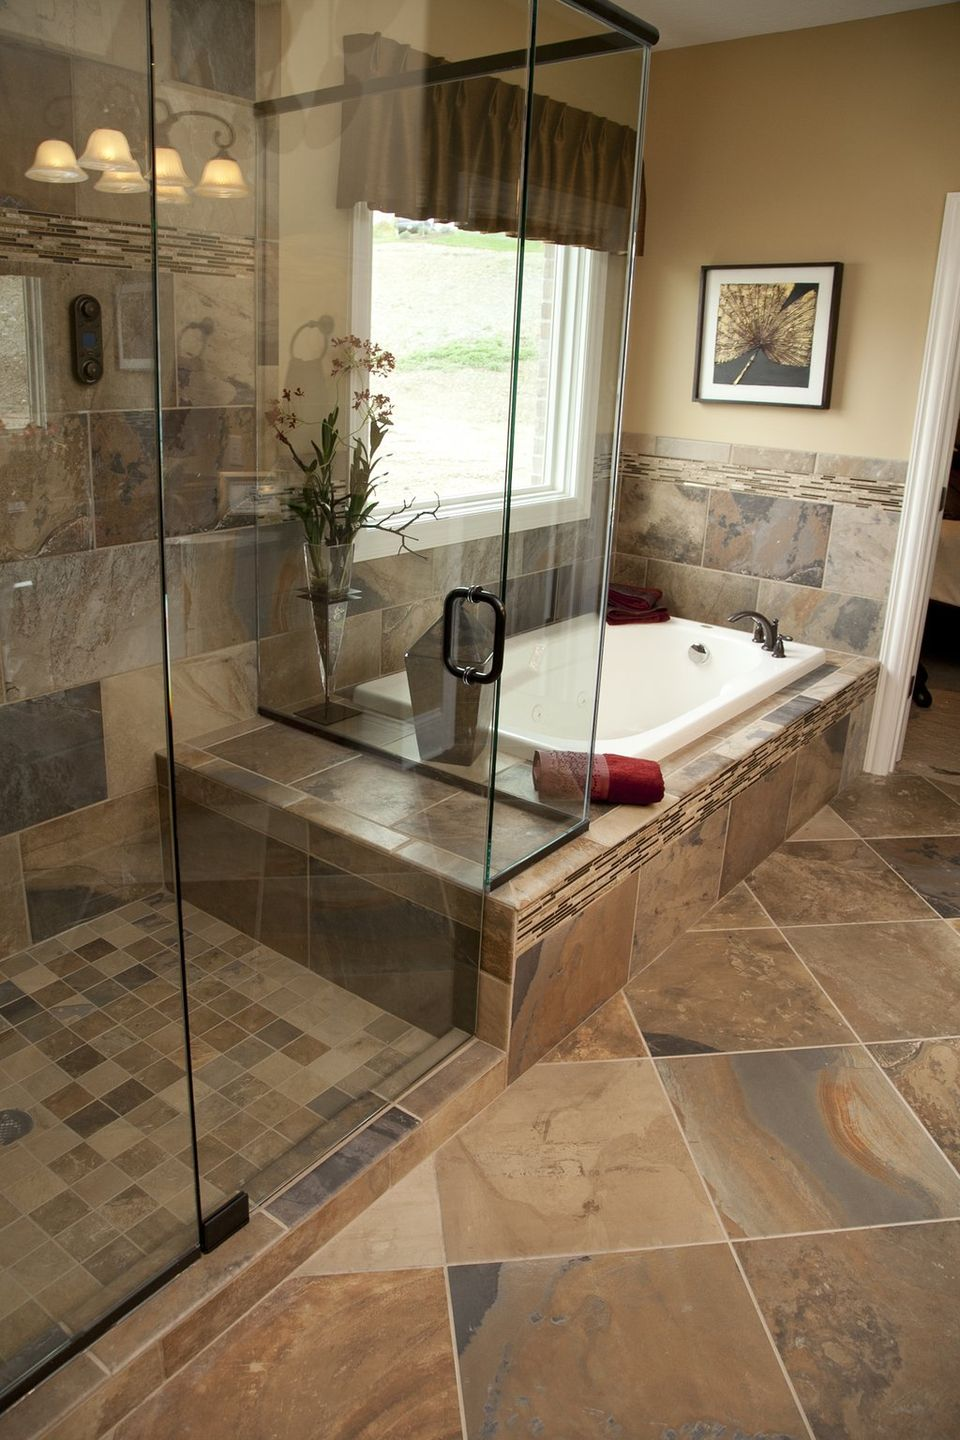 33 stunning pictures and ideas of natural stone bathroom Bathroom tub tile design ideas